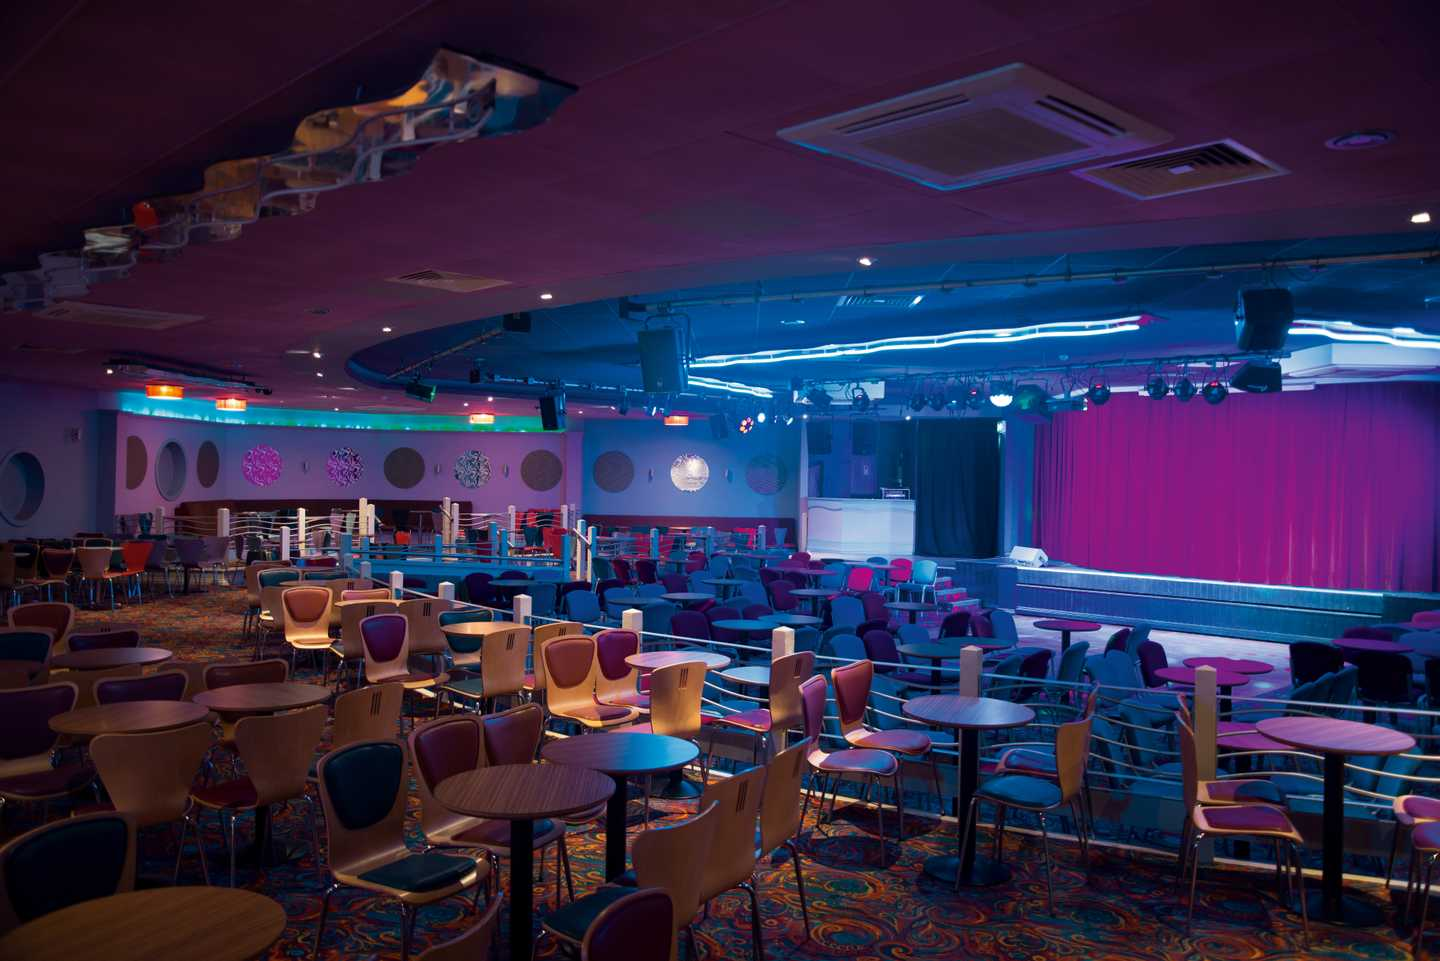 Interior of the Live Lounge